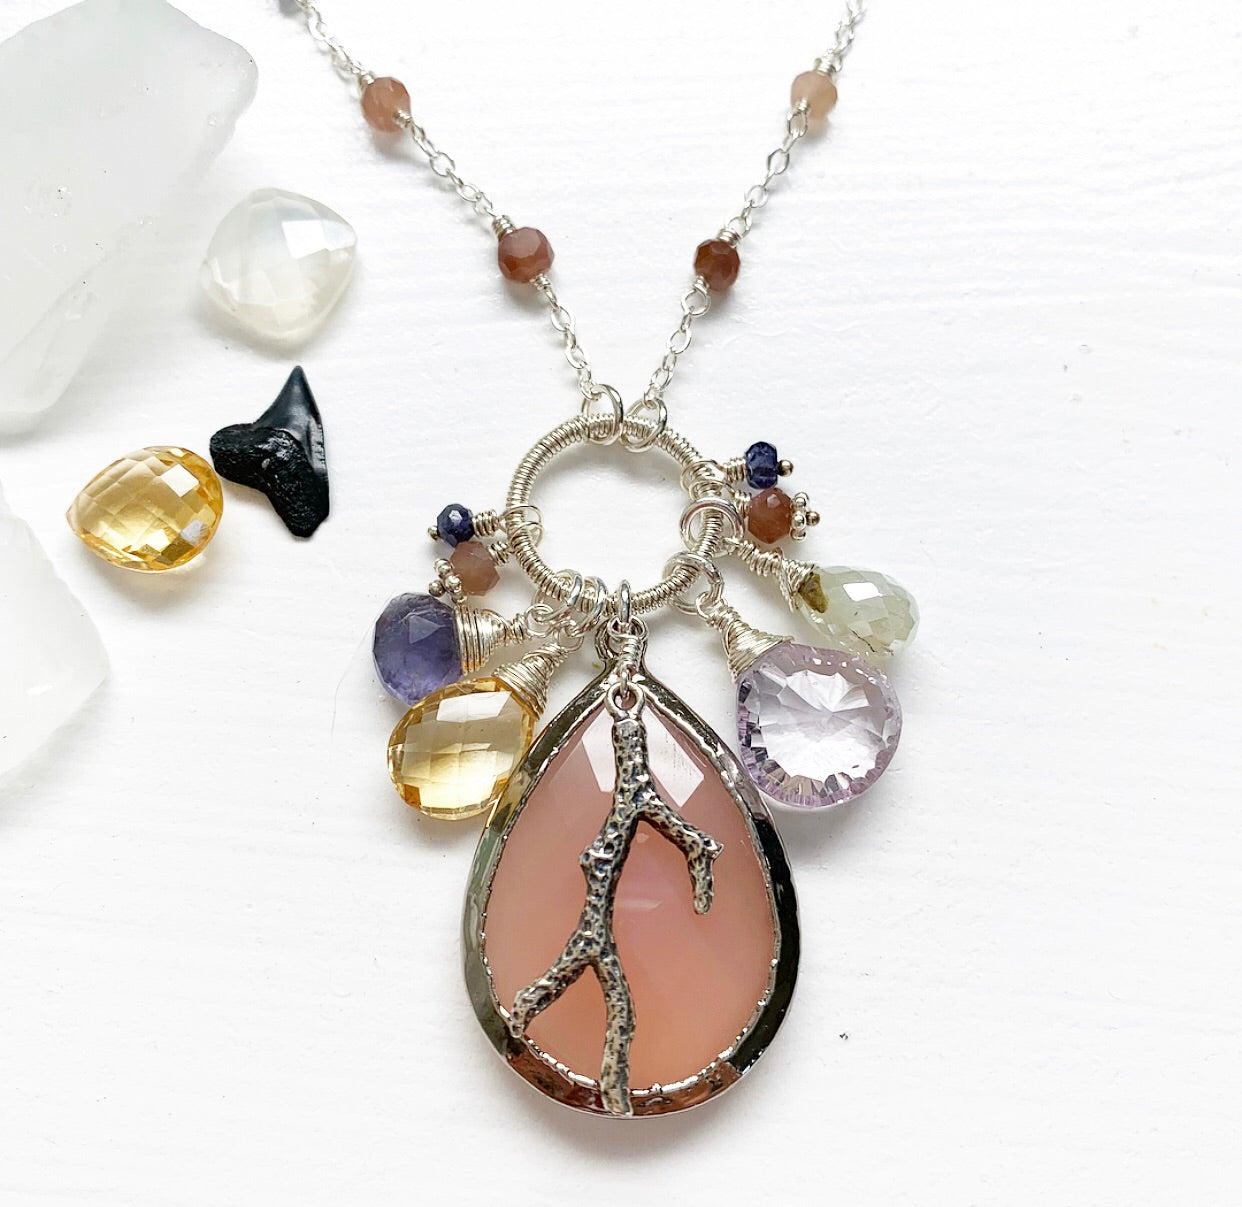 660-One of a Kind Gemstone Drop Necklace